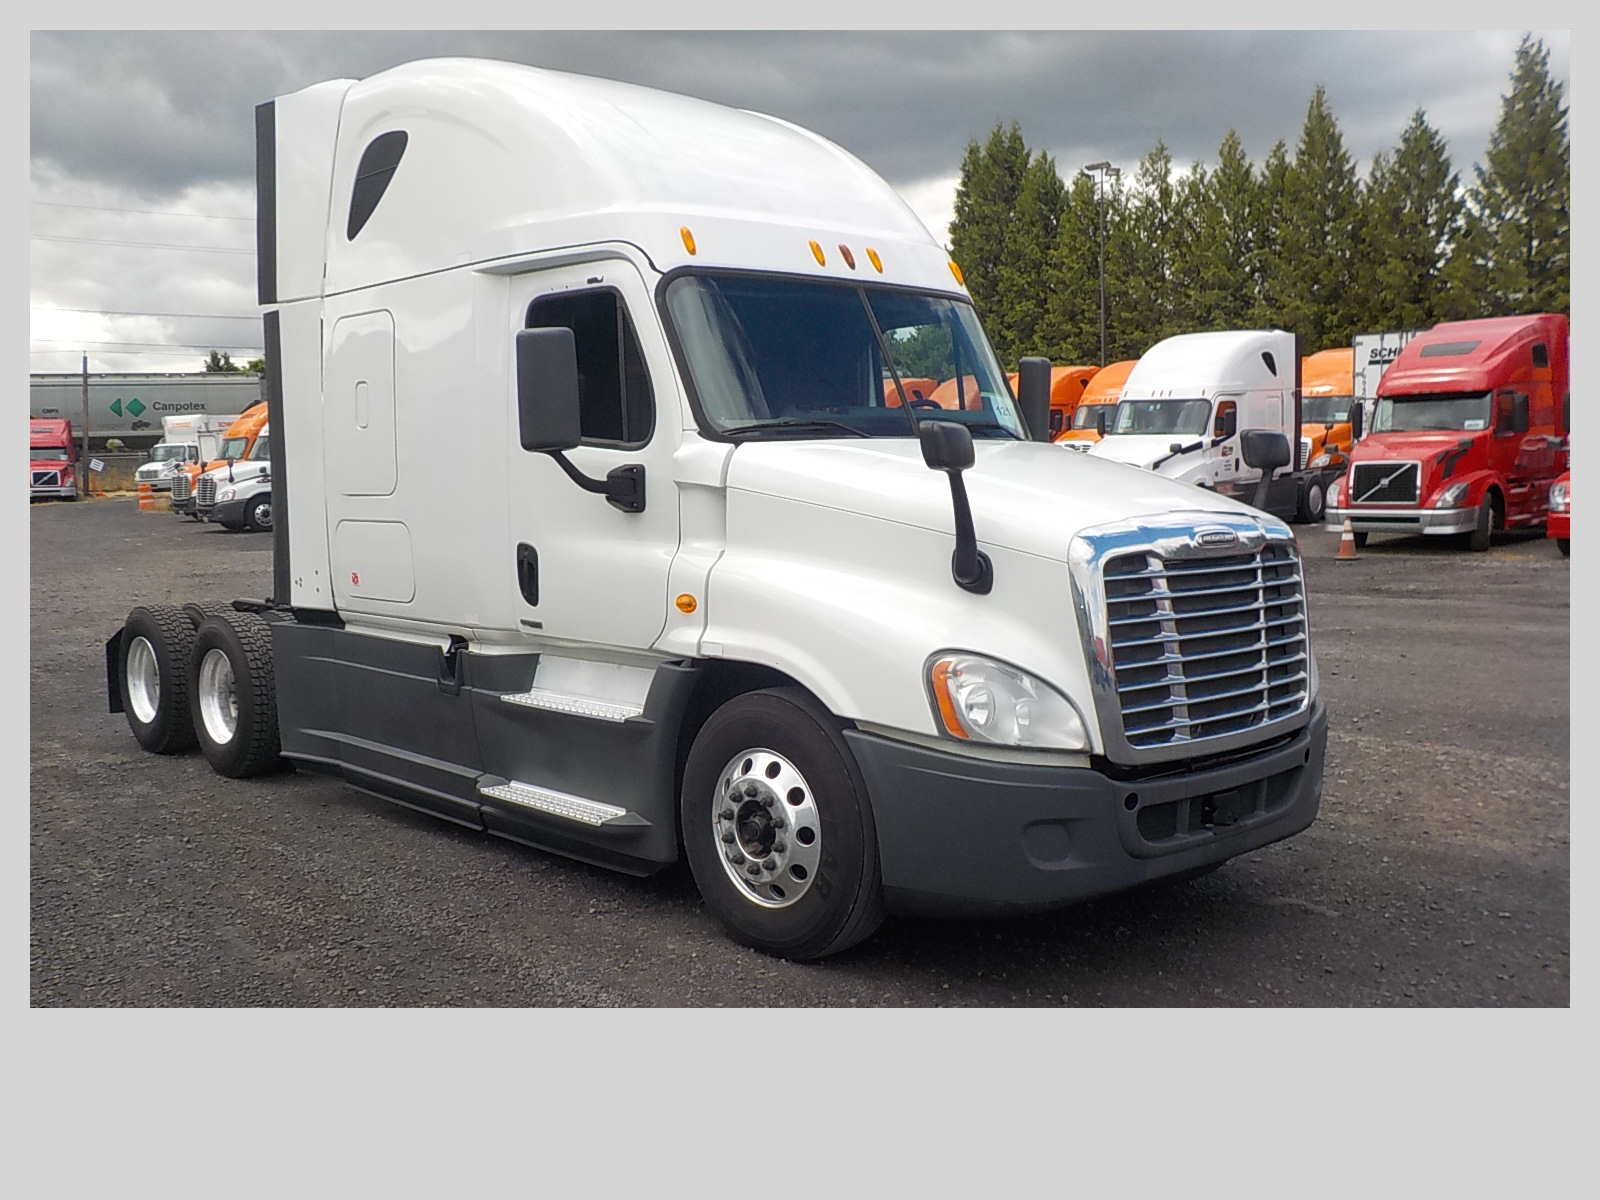 USED 2014 FREIGHTLINER CASCADIA SLEEPER TRUCK #84578